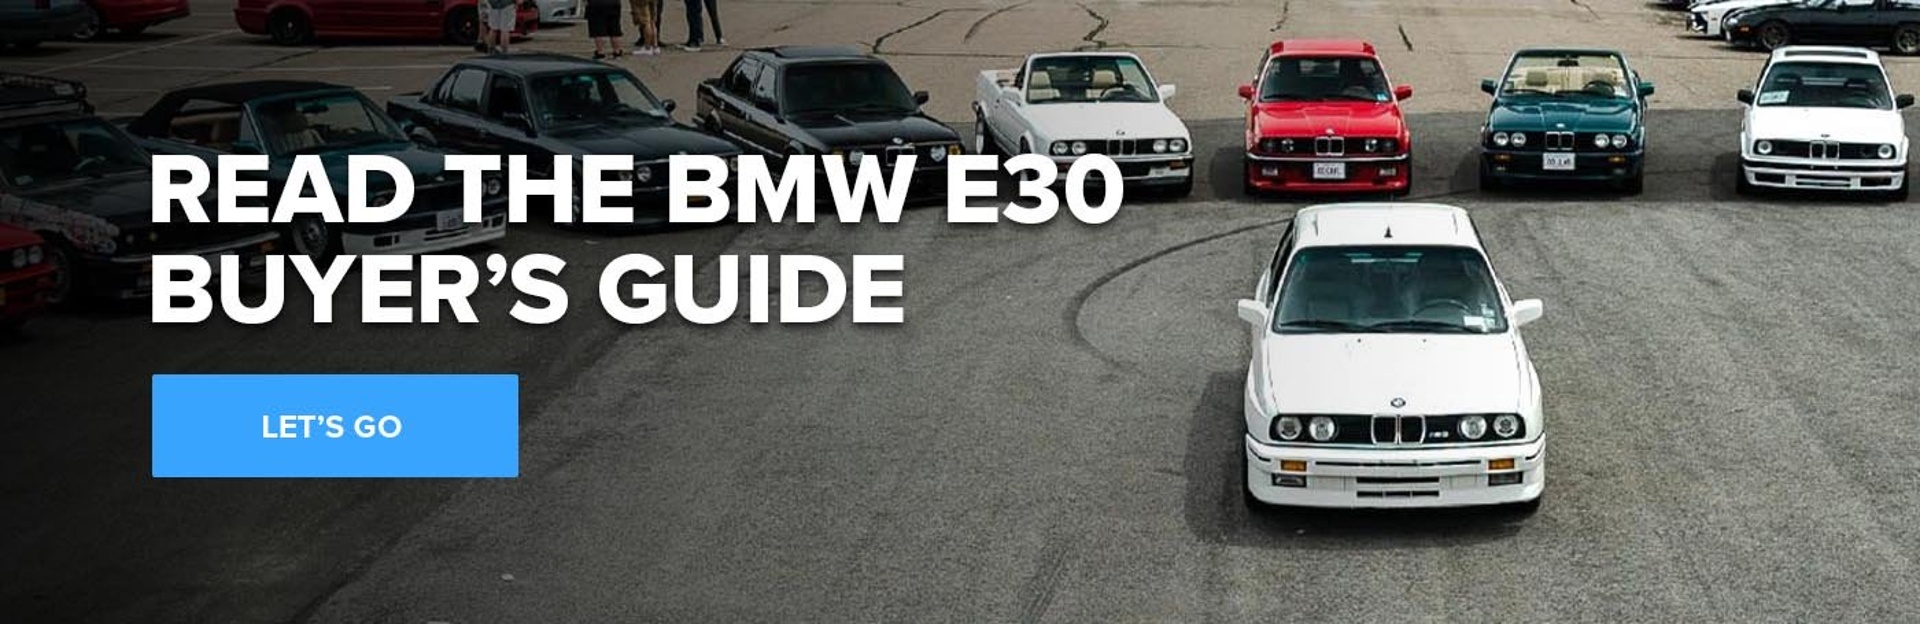 Read the BMW E30 Buyer's Guide